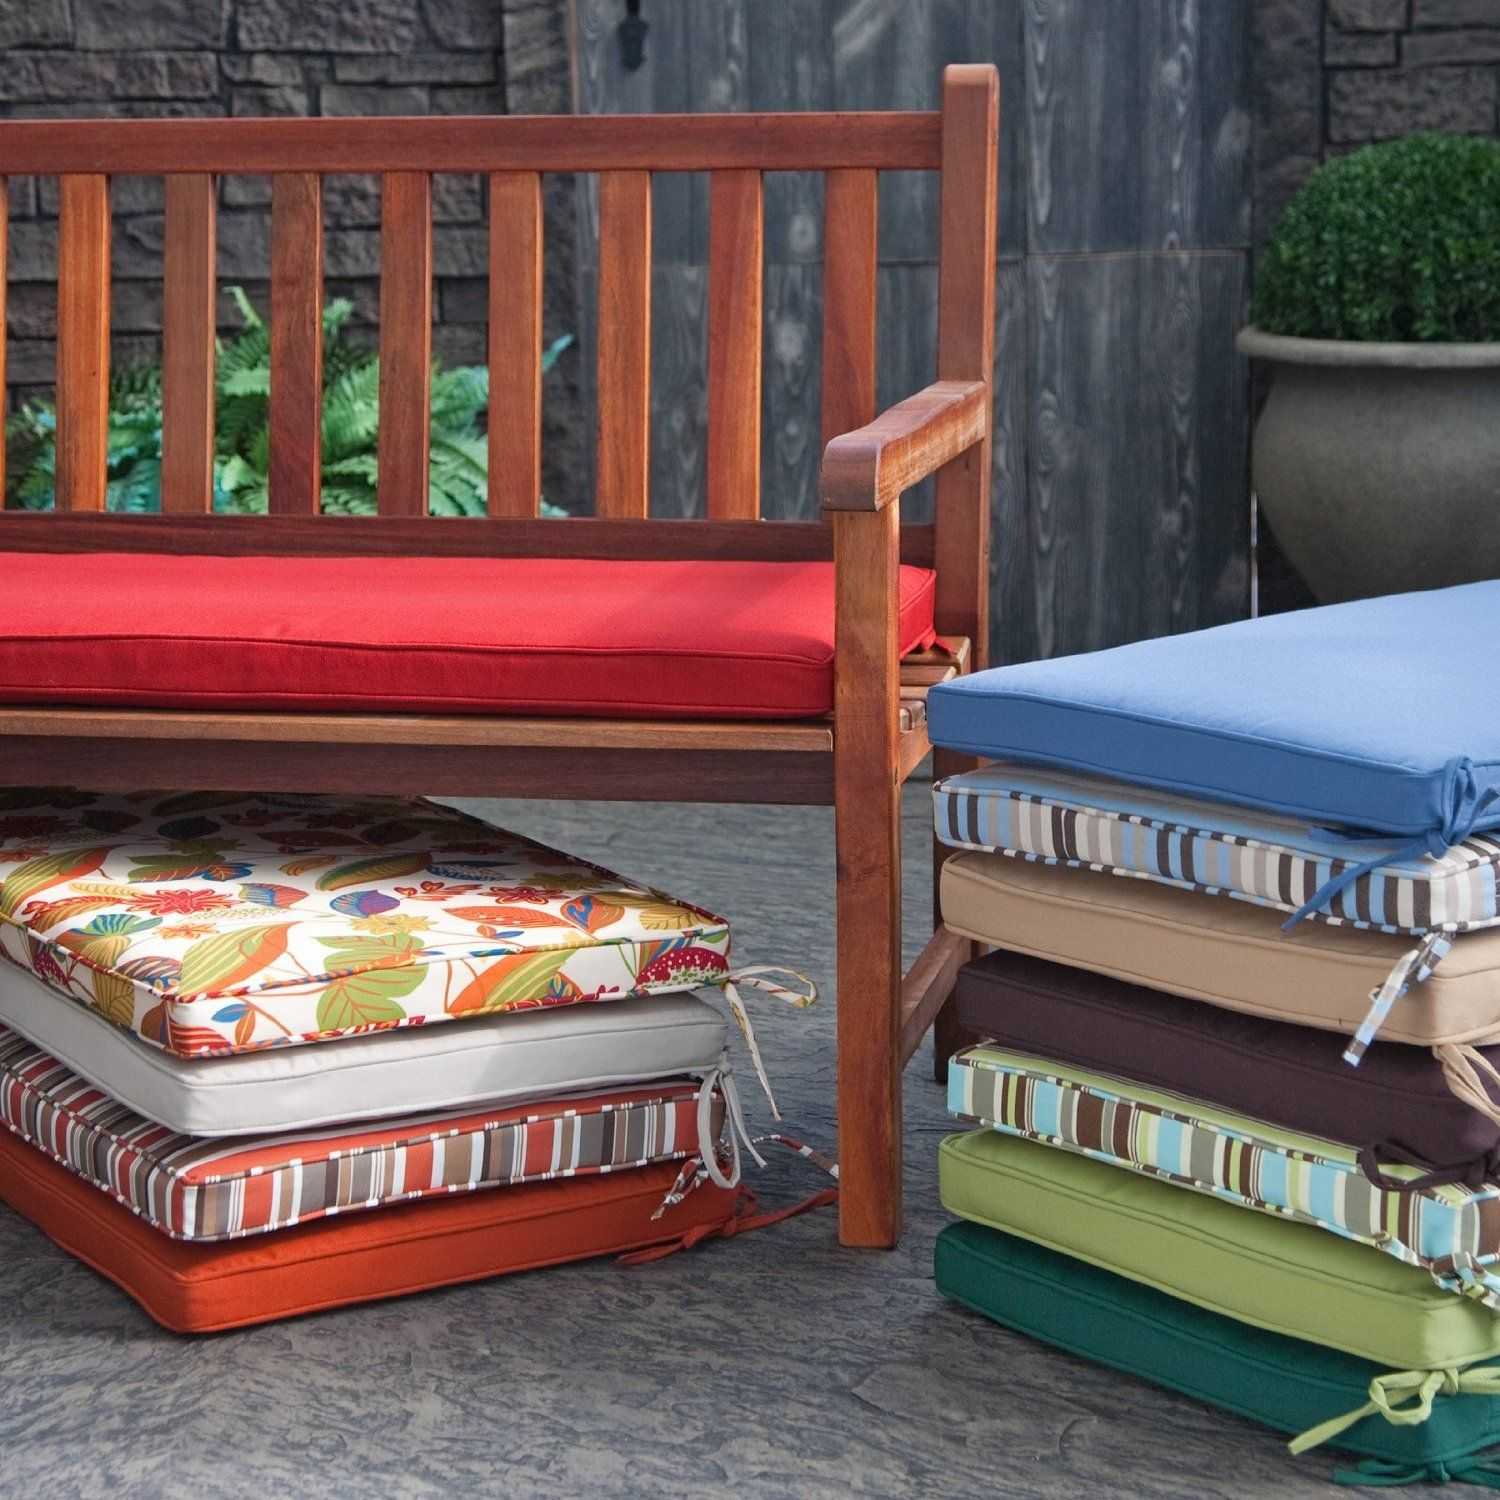 Outdoor Cushions For Diy Bench Diy Outdoor Cushions Patio Furniture Cushions Bench Cushions